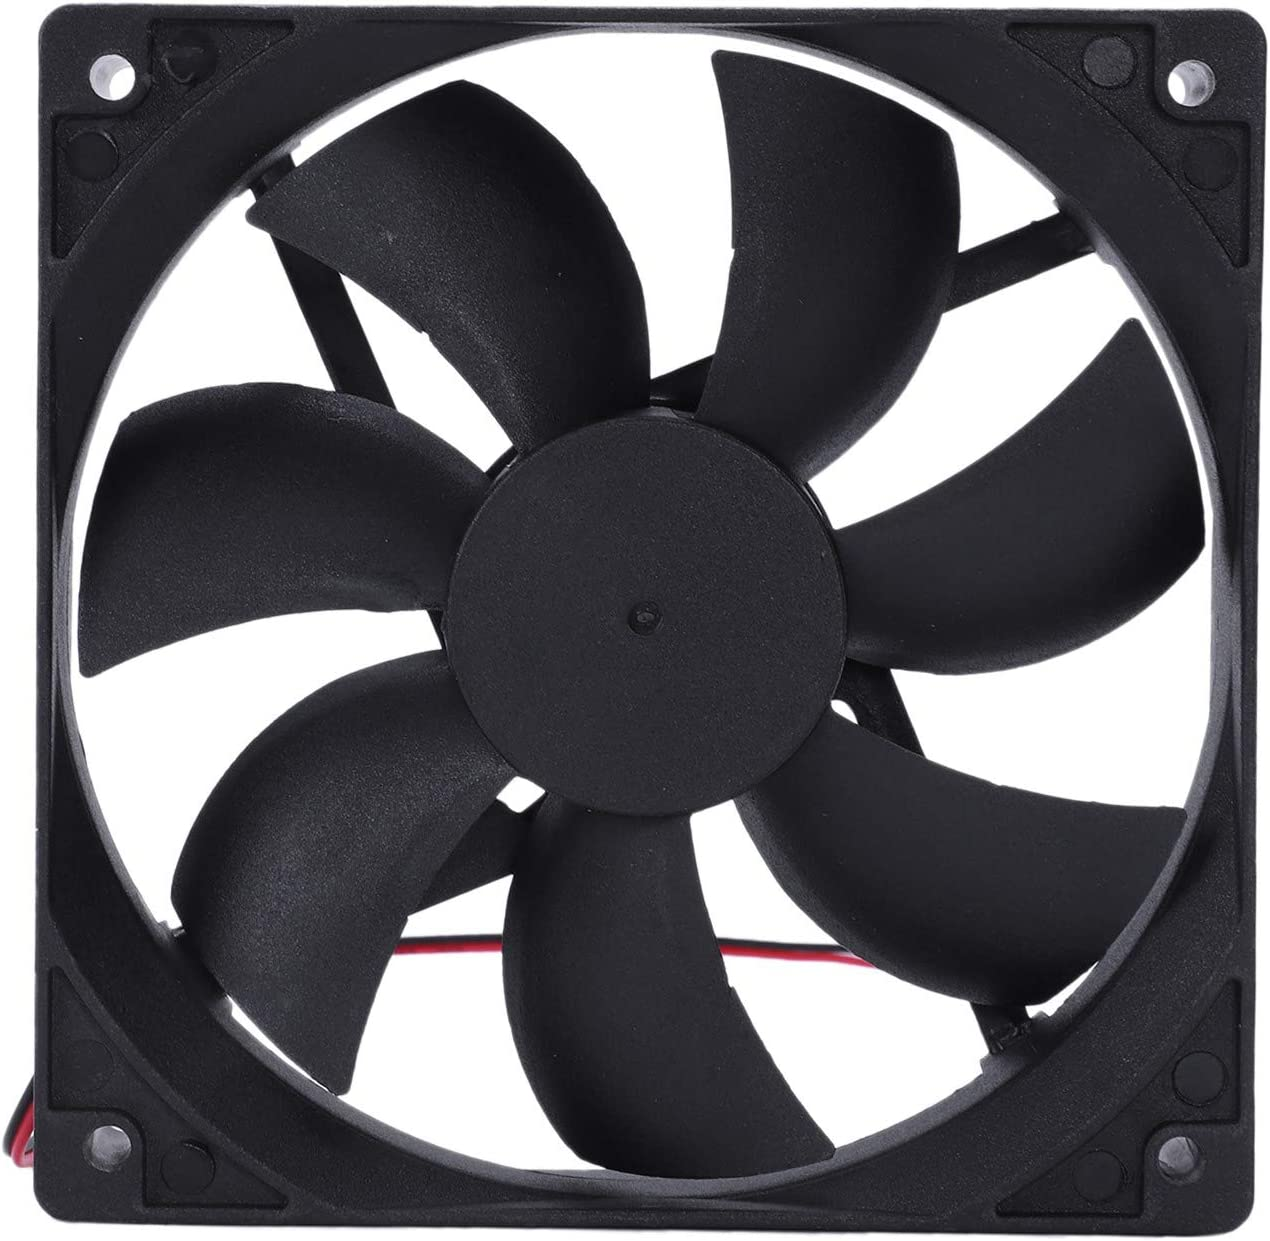 Vaorwne 120mm x 25mm 12V 2Pin Sleeve Bearing Cooling Fan for Computer Case